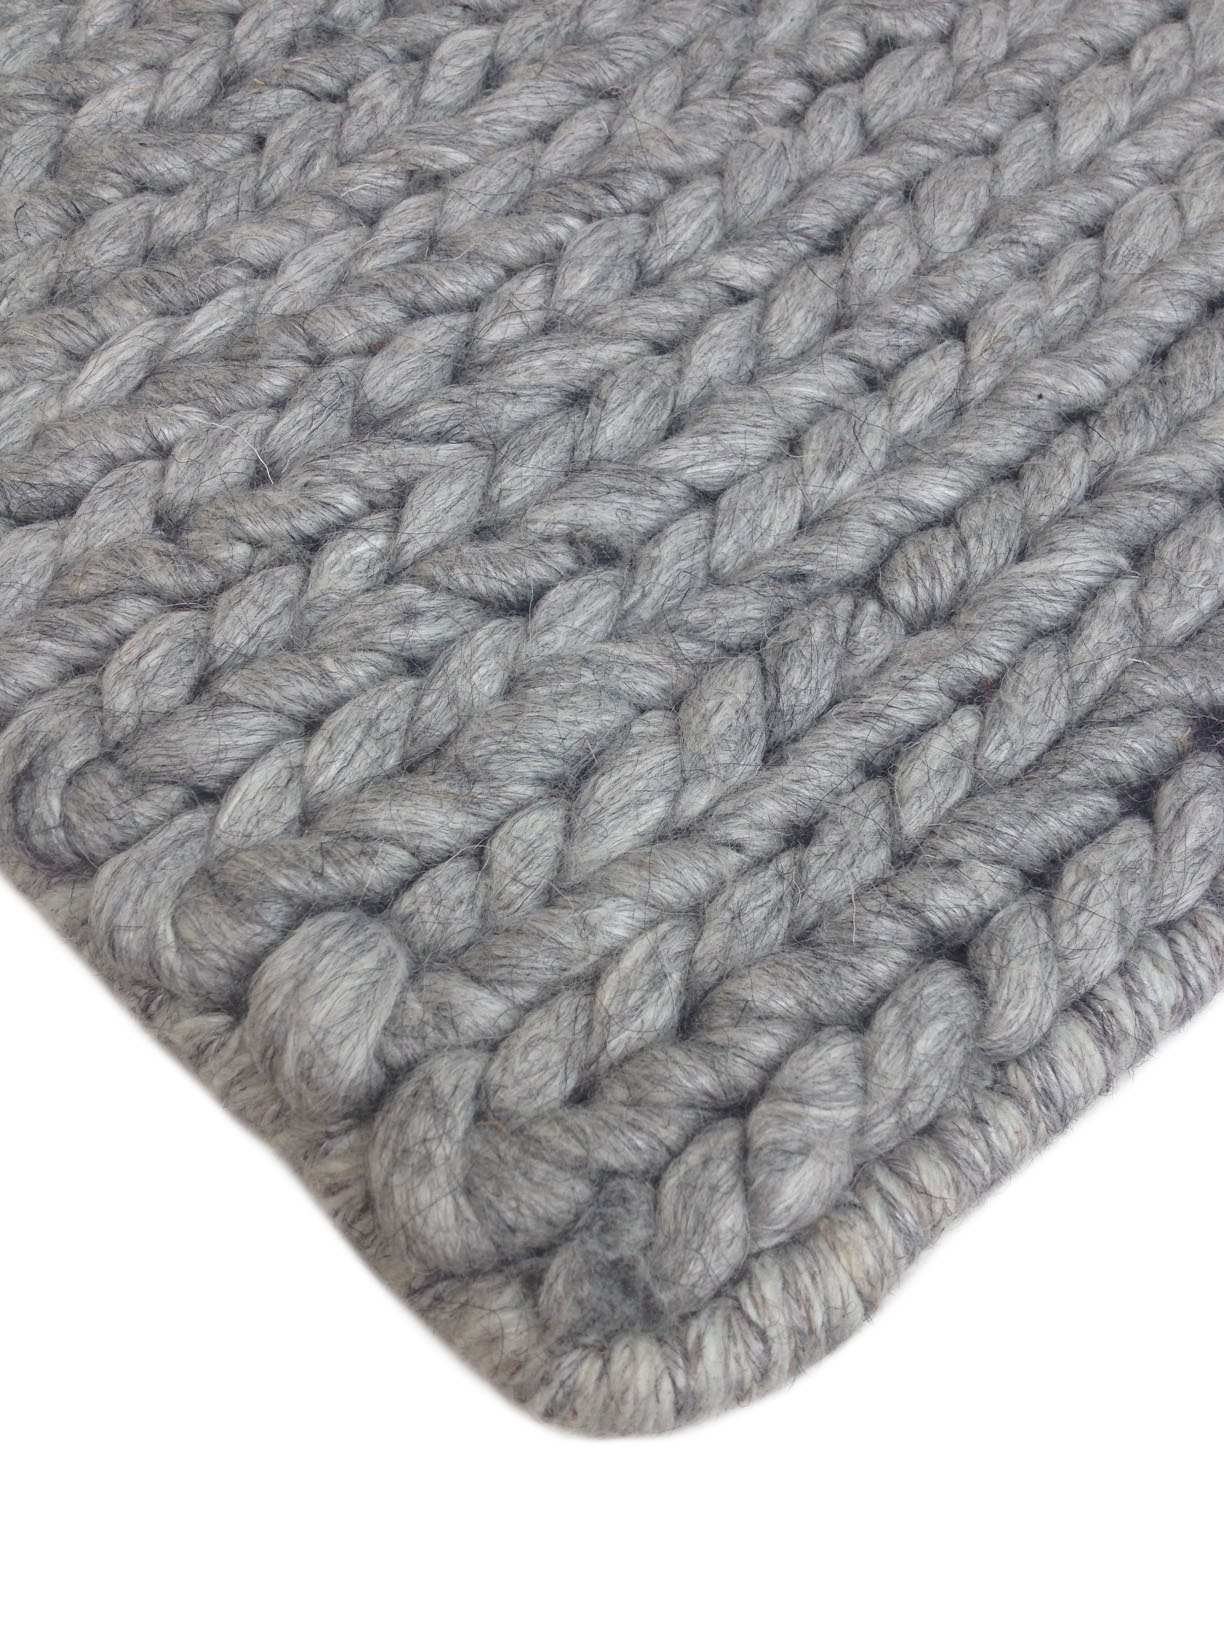 Soul - Oyster Shell rugs